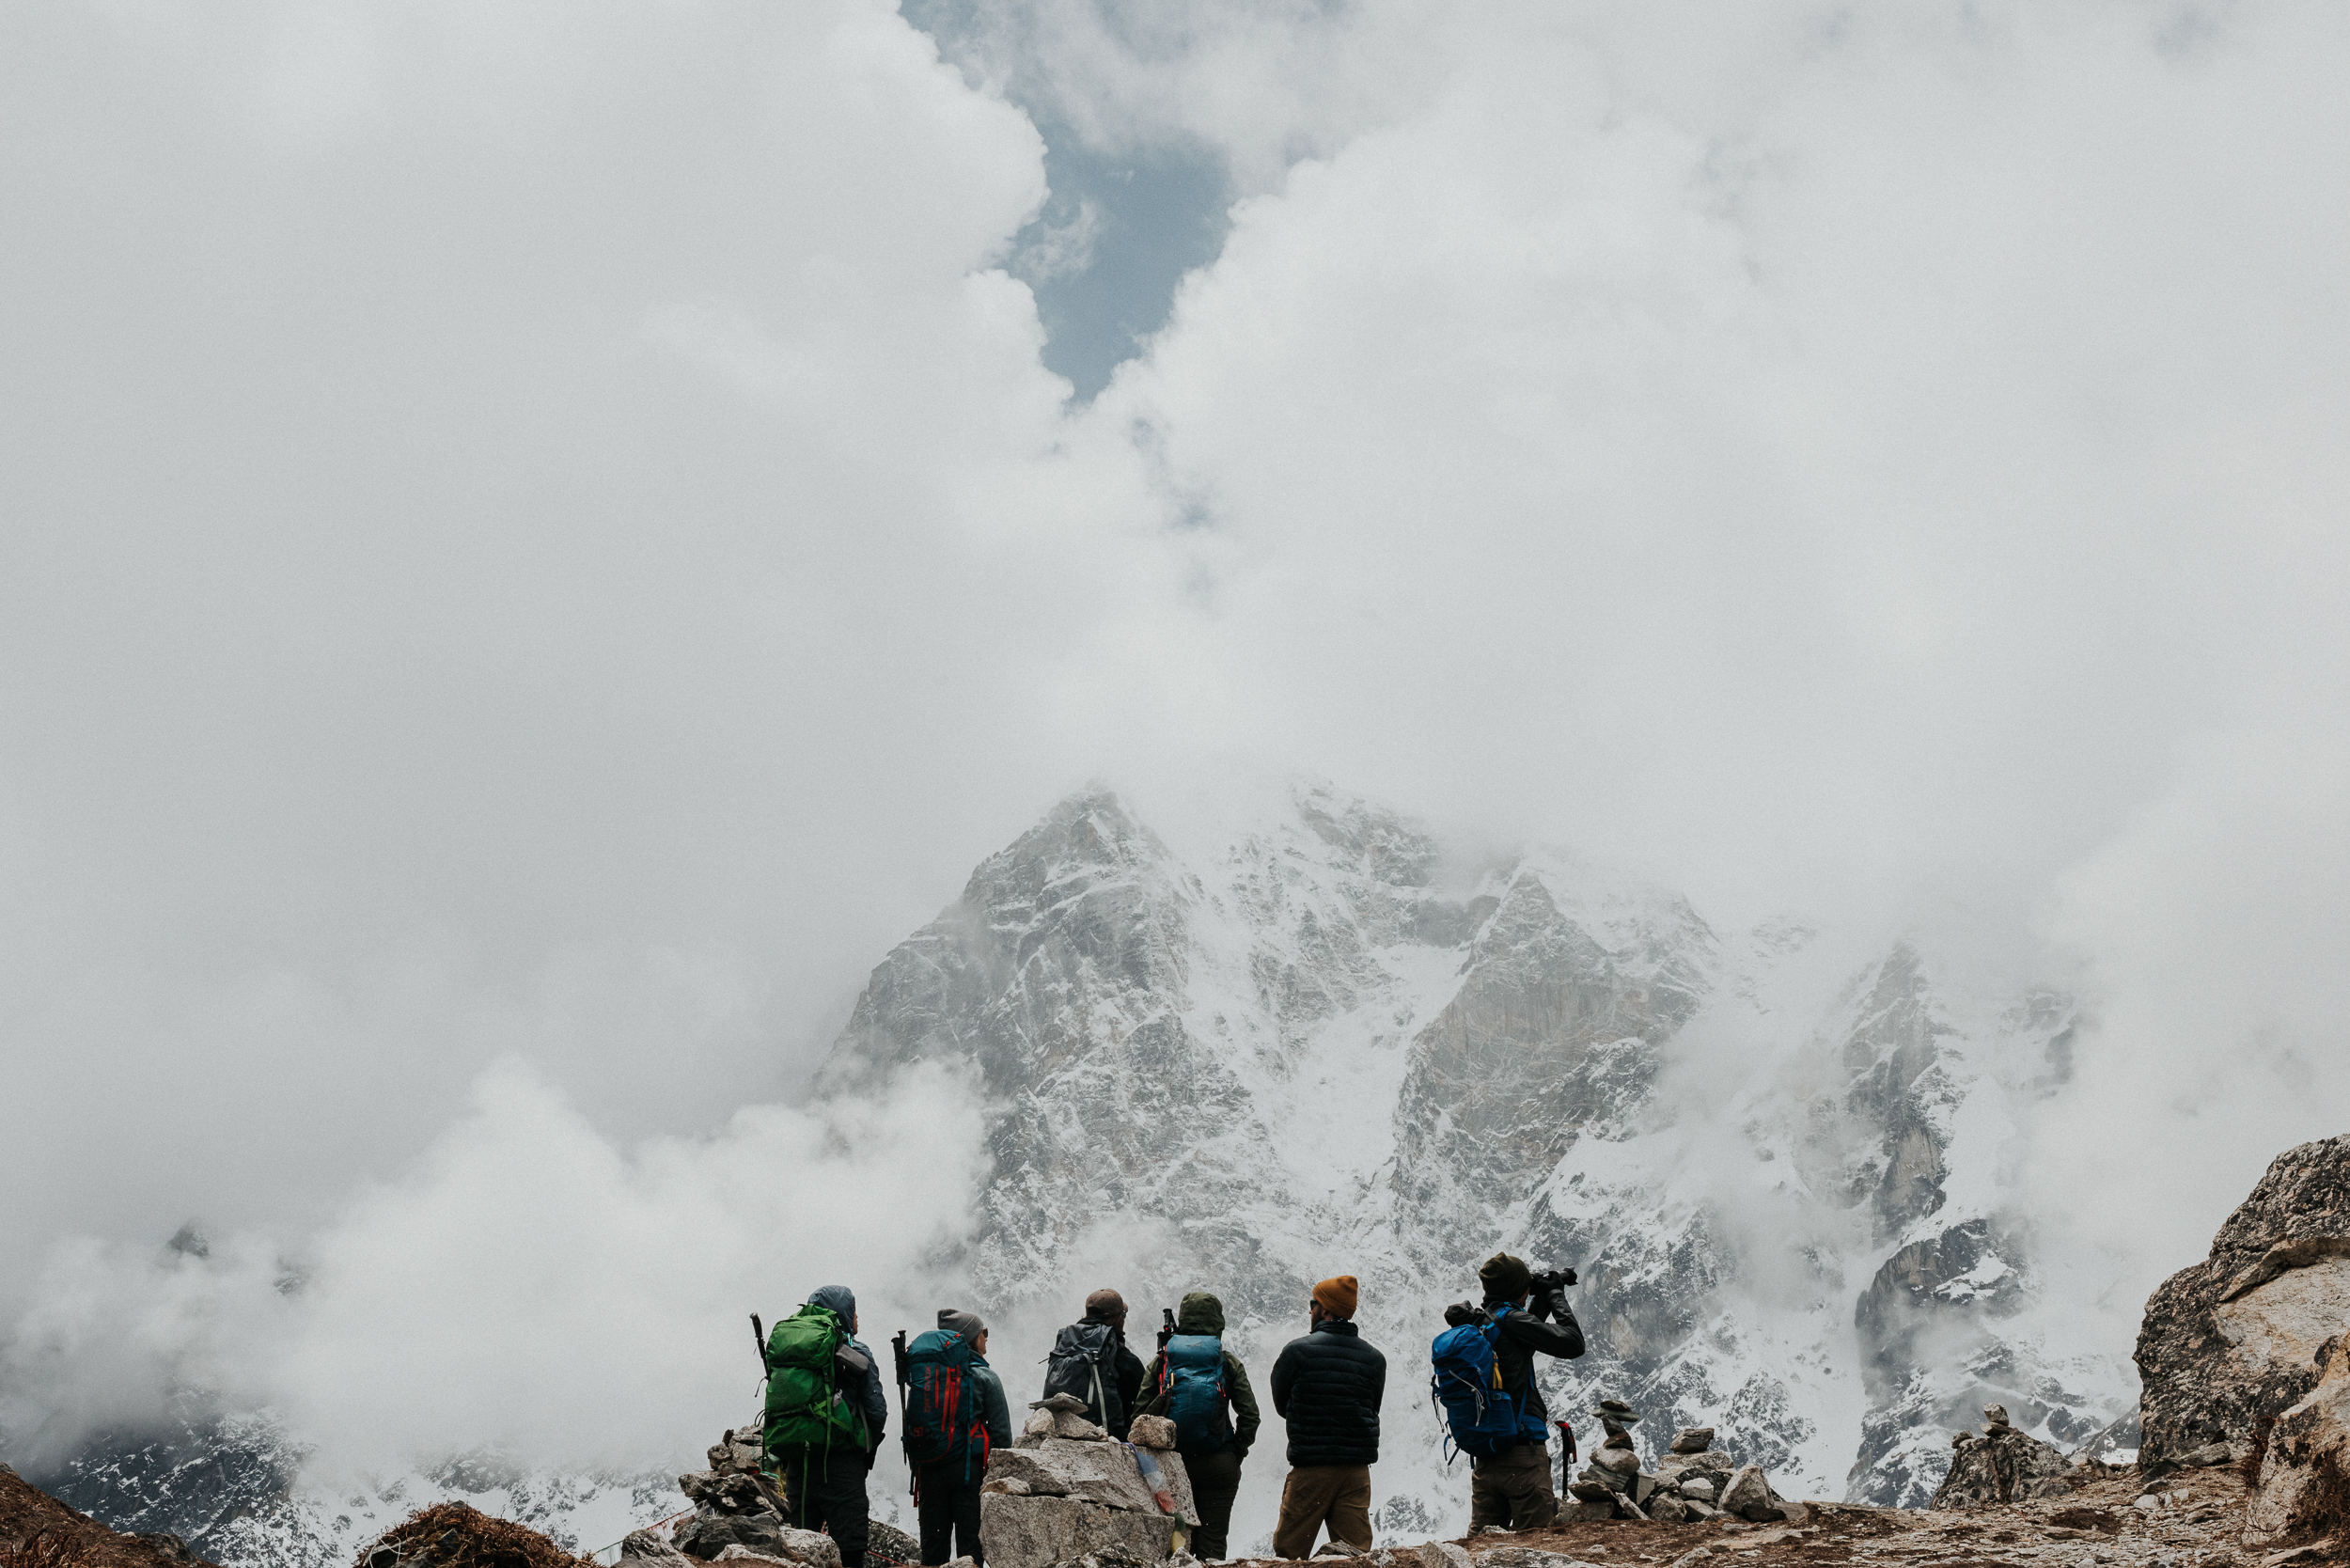 Nepal_EverestBaseCamp_2019_TaraShupe_Photography_DSC_4109.jpg